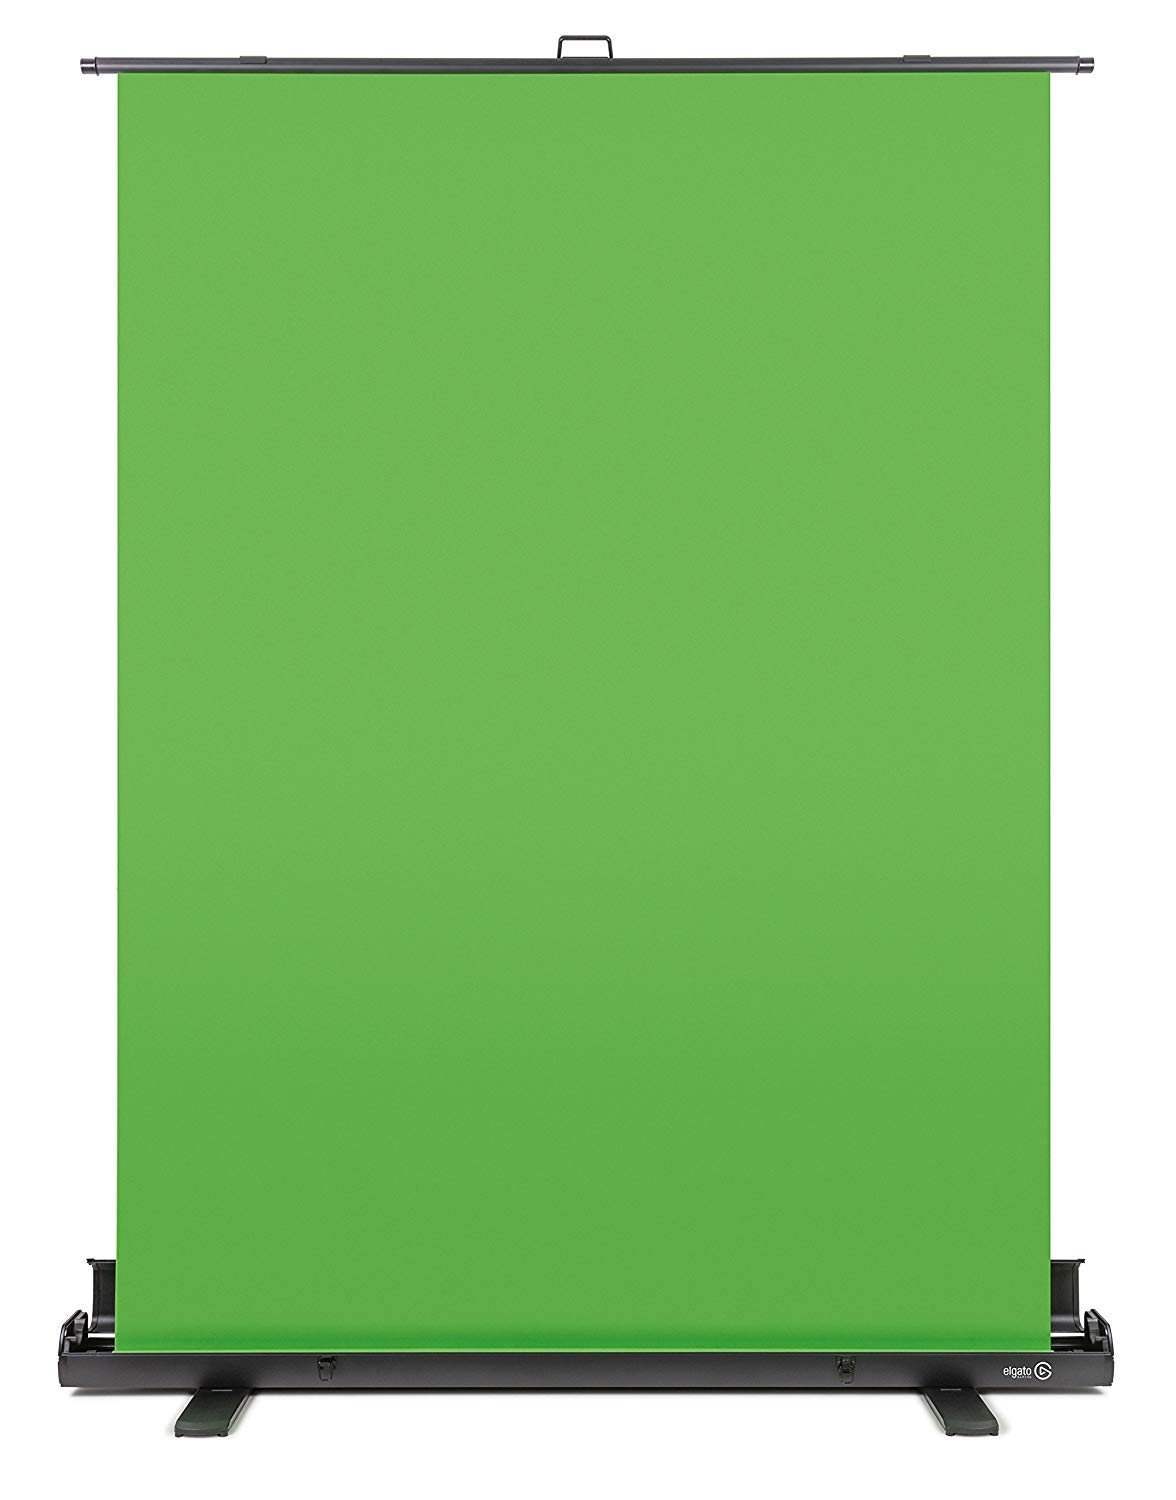 Elgato Green Screen - Collapsible chroma key panel for background removal with auto-locking frame, wrinkle-resistant chroma-green fabric, aluminum hard case, ultra-quick setup and breakdown by Corsair